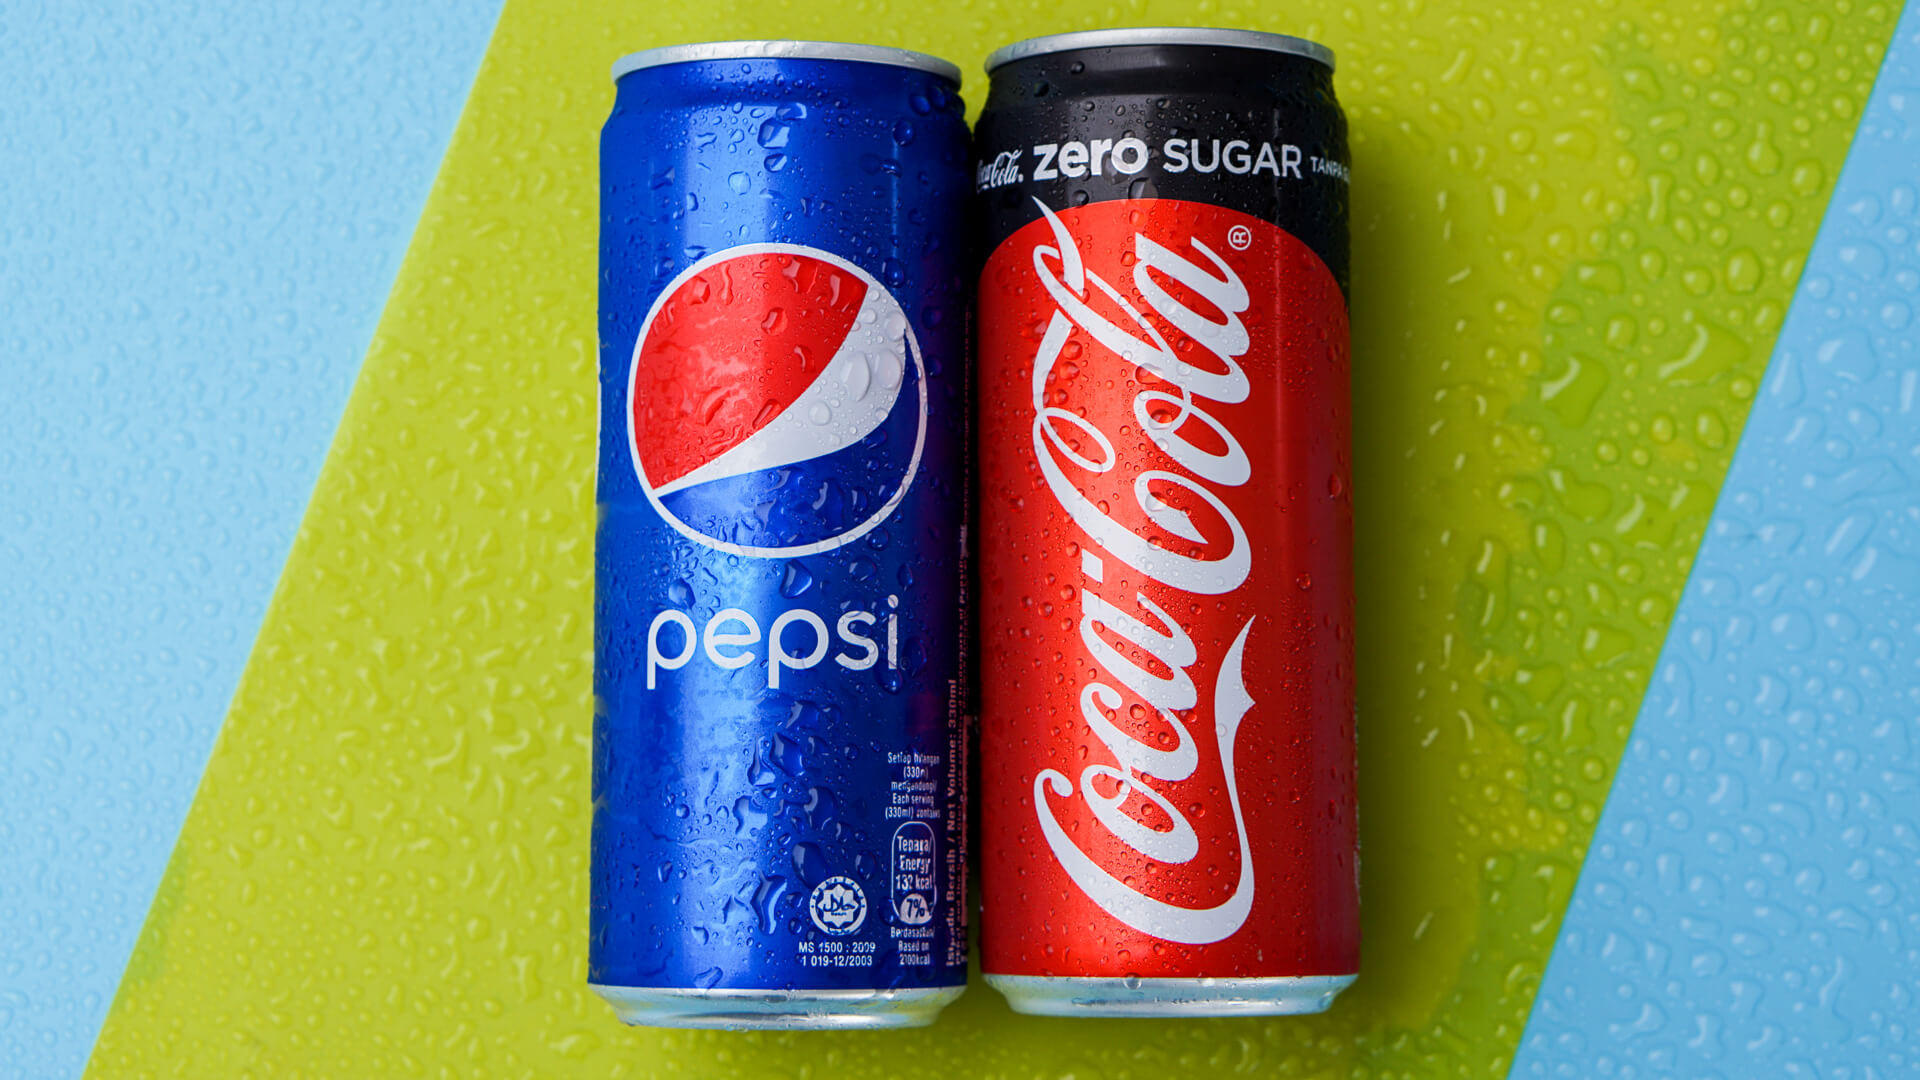 Pepsi and Coca-Cola on green and blue background